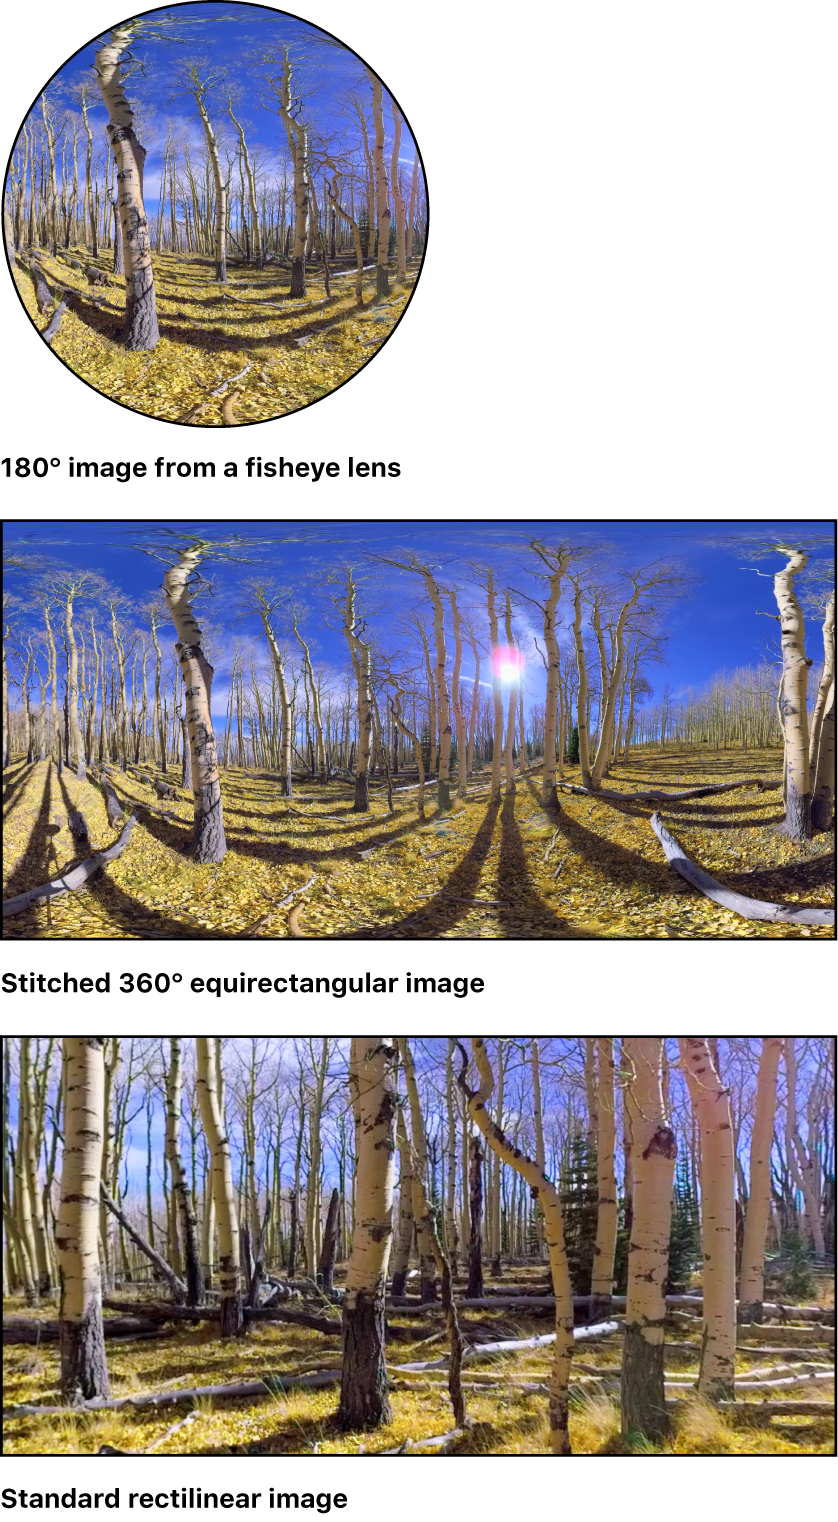 A single fisheye image, a stitched 360° image, and a standard rectilinear image